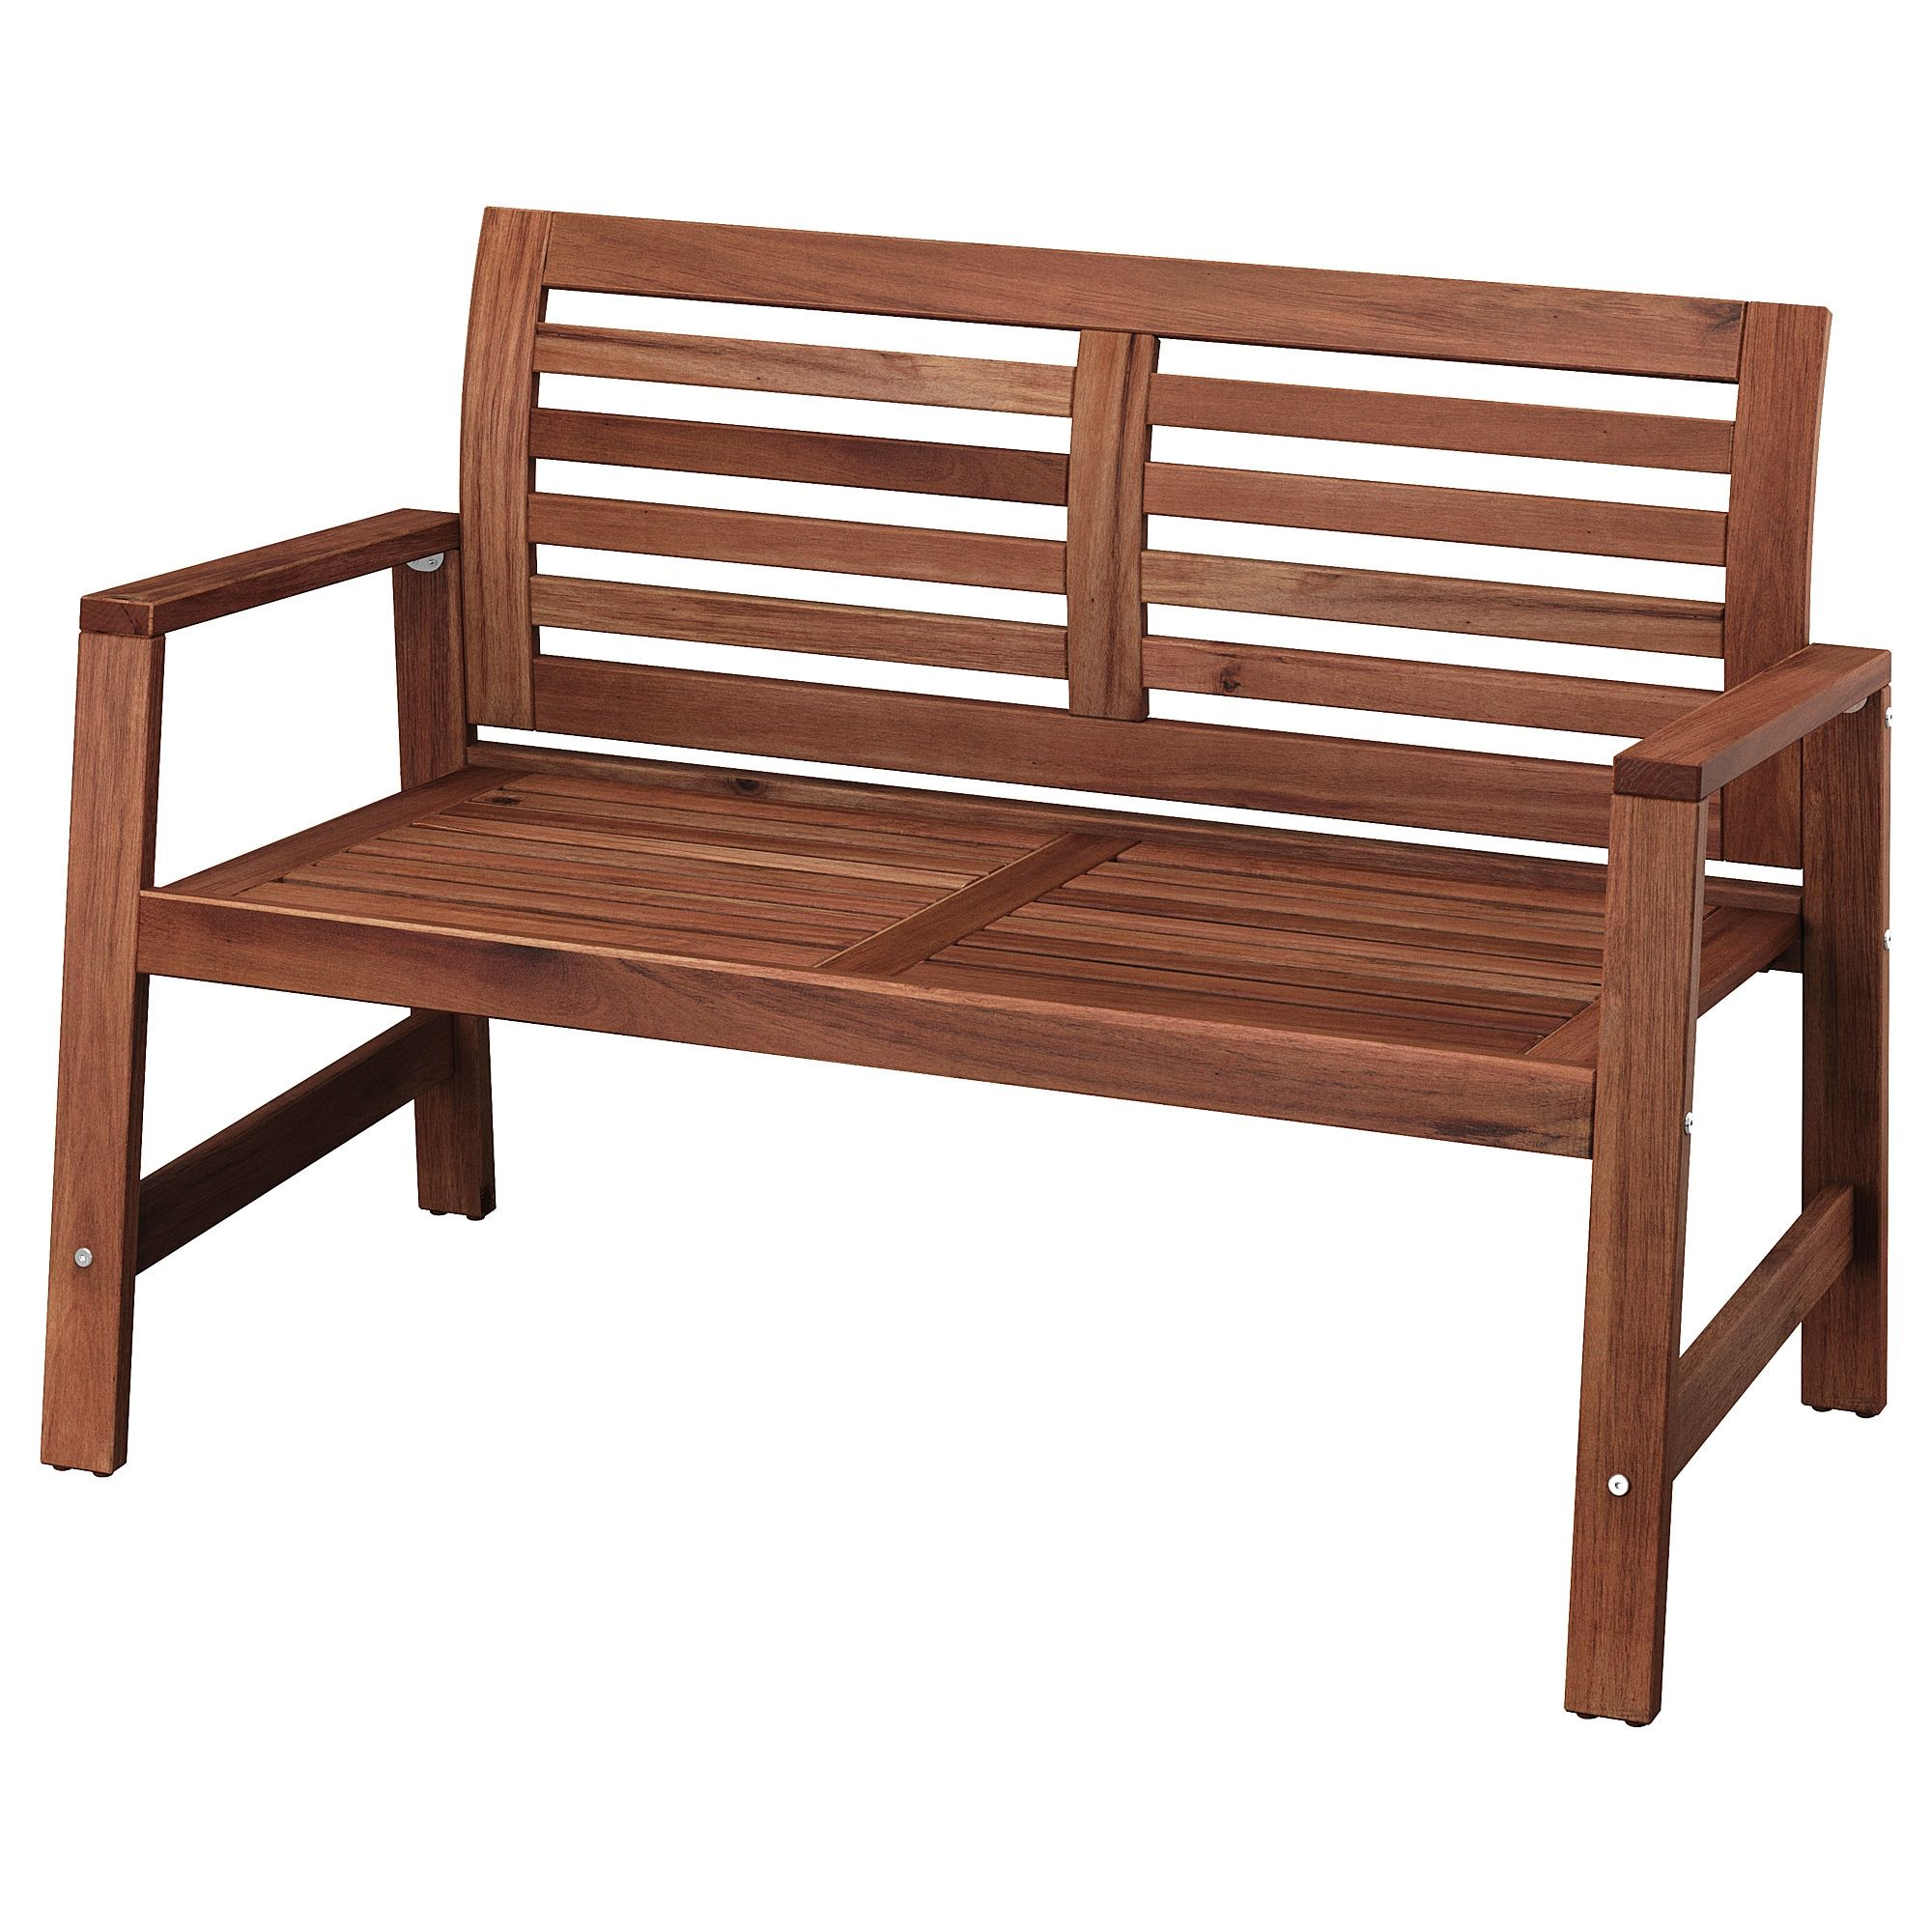 Applaro Bench With Backrest Outdoor Brown Stained Brown Used